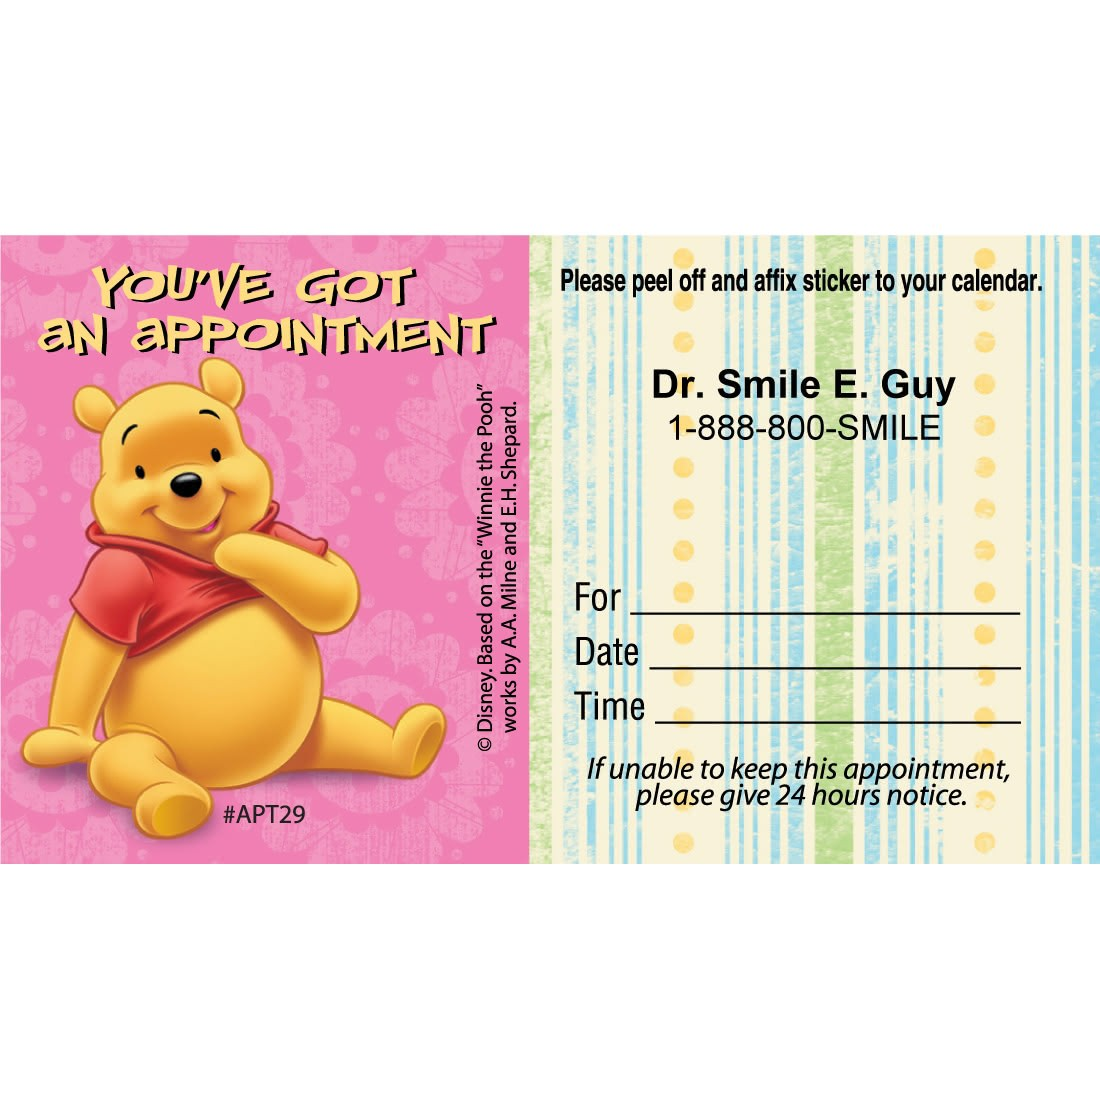 Custom Pooh You've Got an Appointment Cards [image]